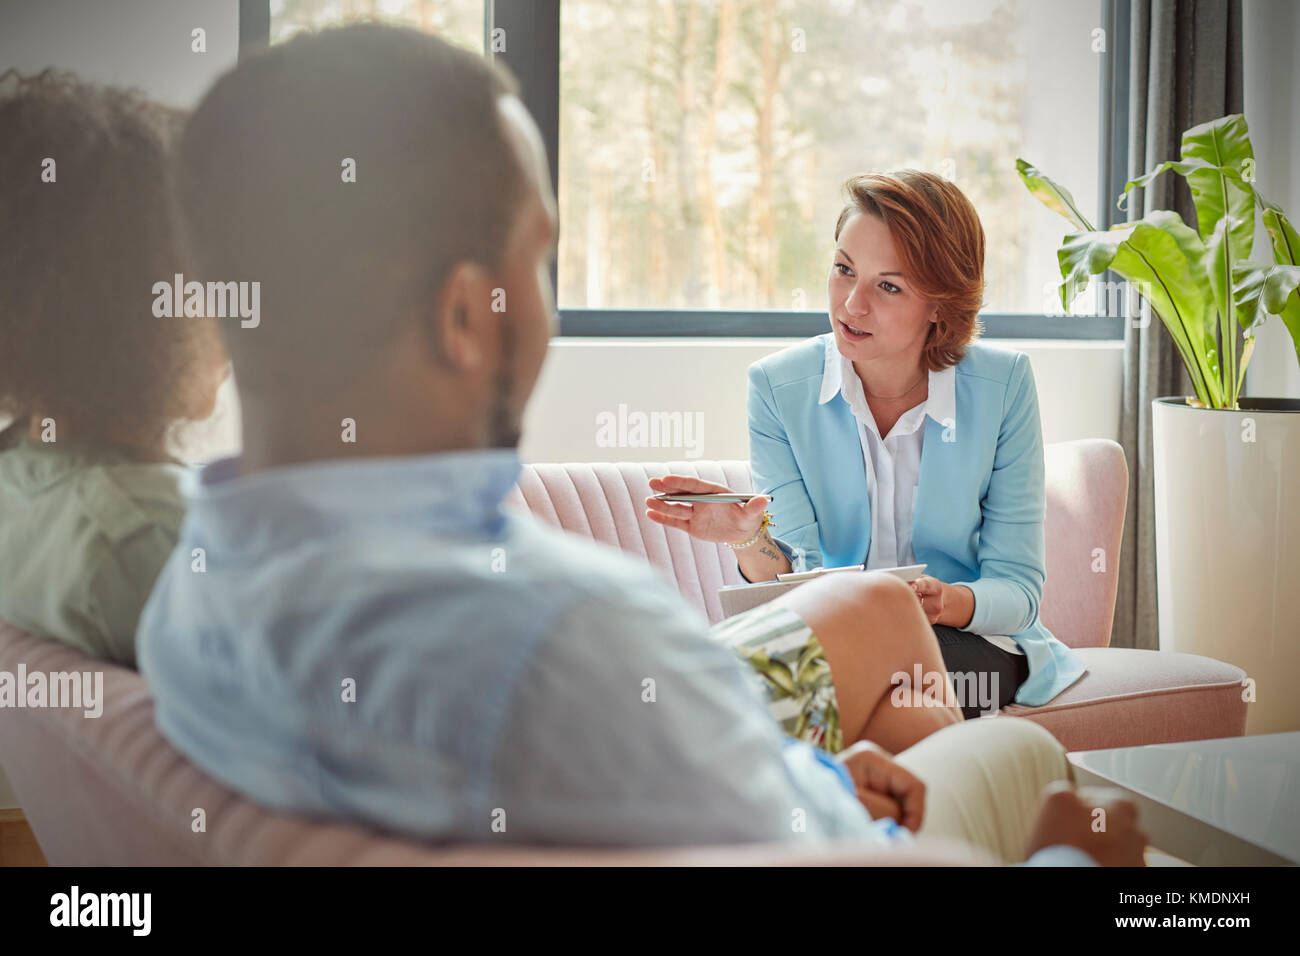 Therapist talking to couple in couples therapy session - Stock Image